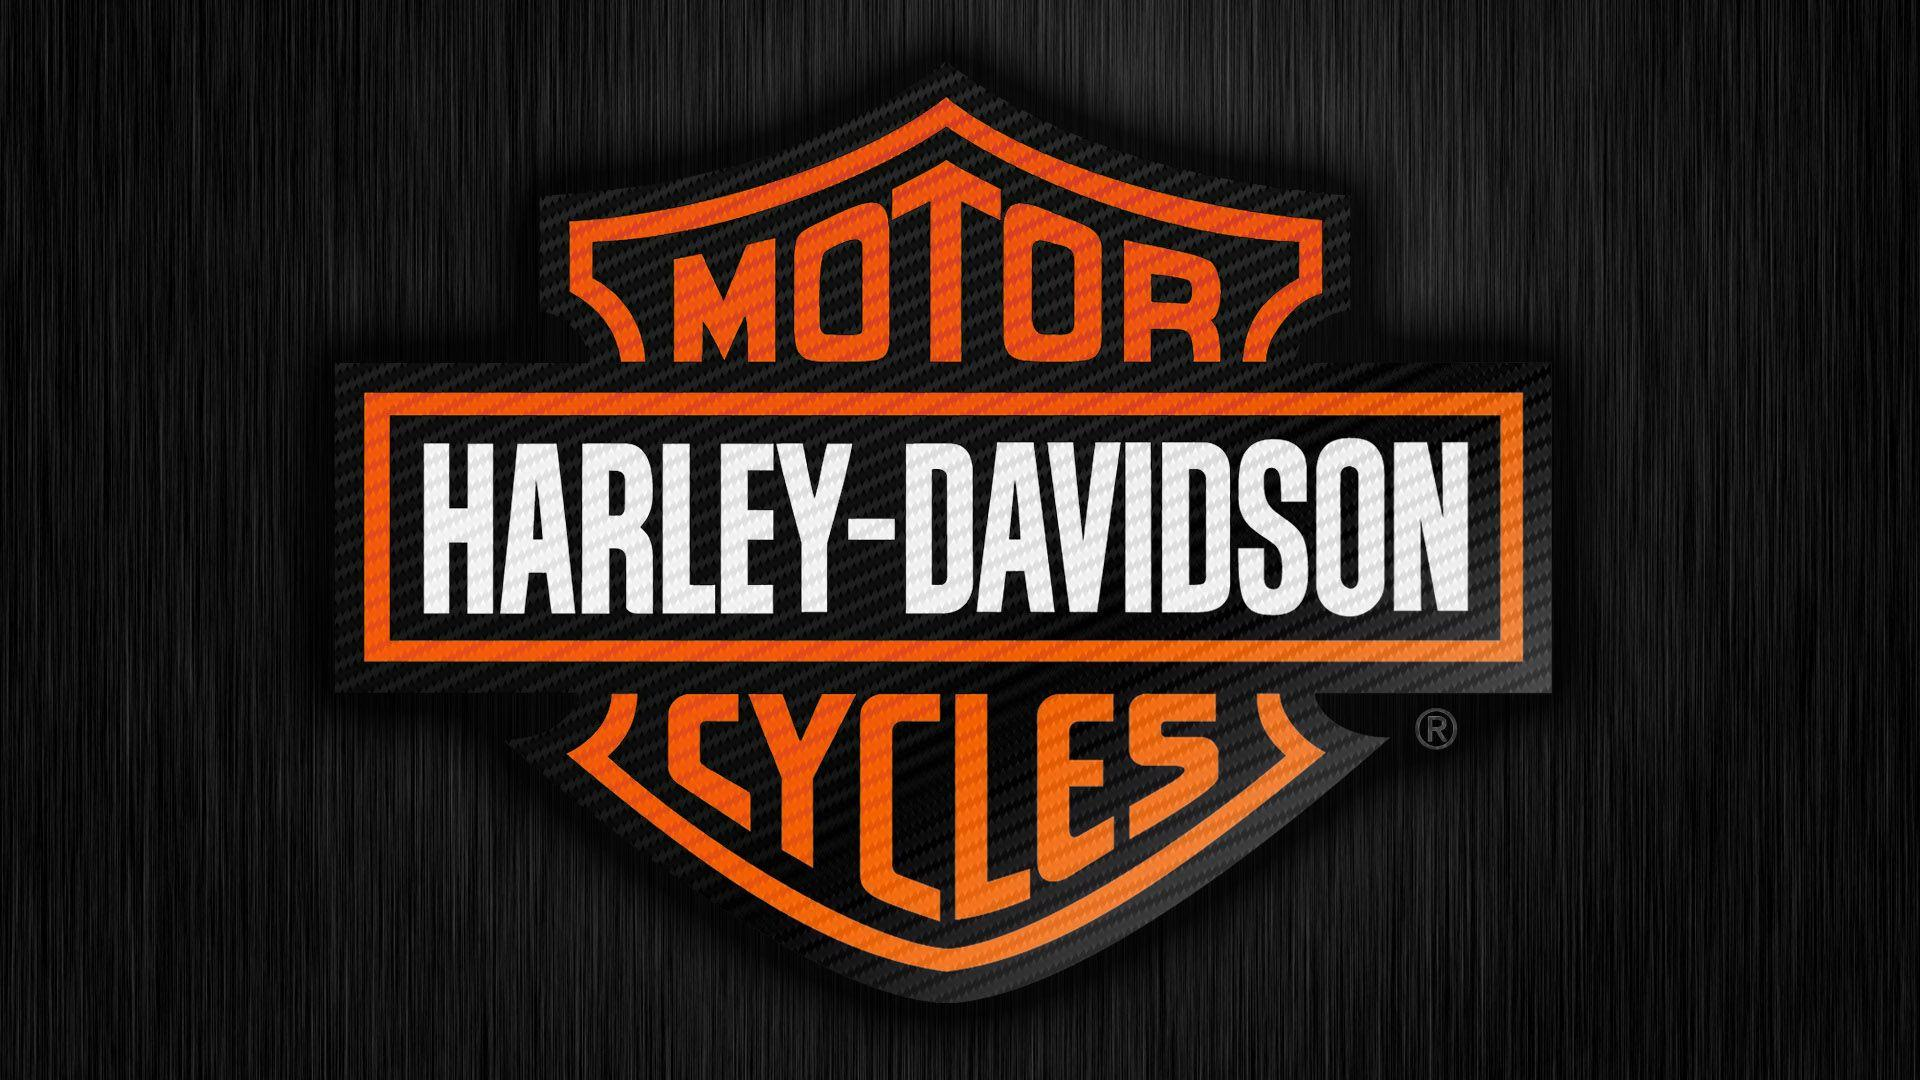 Harley davidson backgrounds pictures wallpaper cave harley davidson desktop background wide wallpapers voltagebd Images